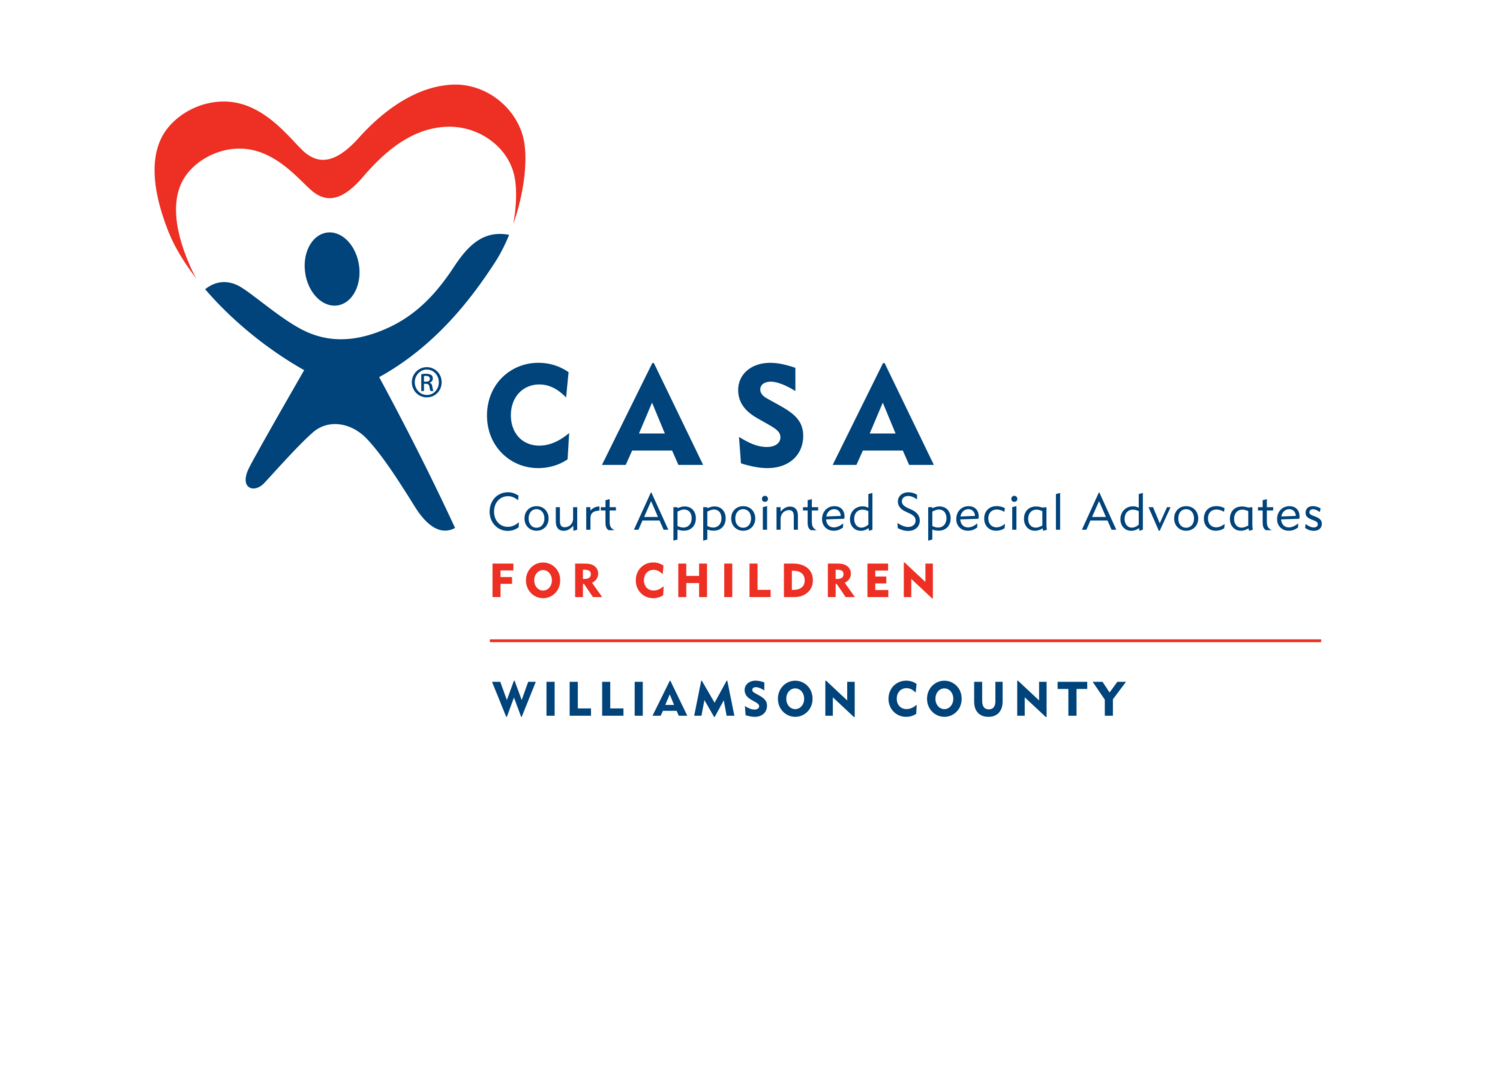 LORI DAWSON AND AMY FINNEGAN: MAY WILLIAMSON COUNTY CASA ADVOCATE